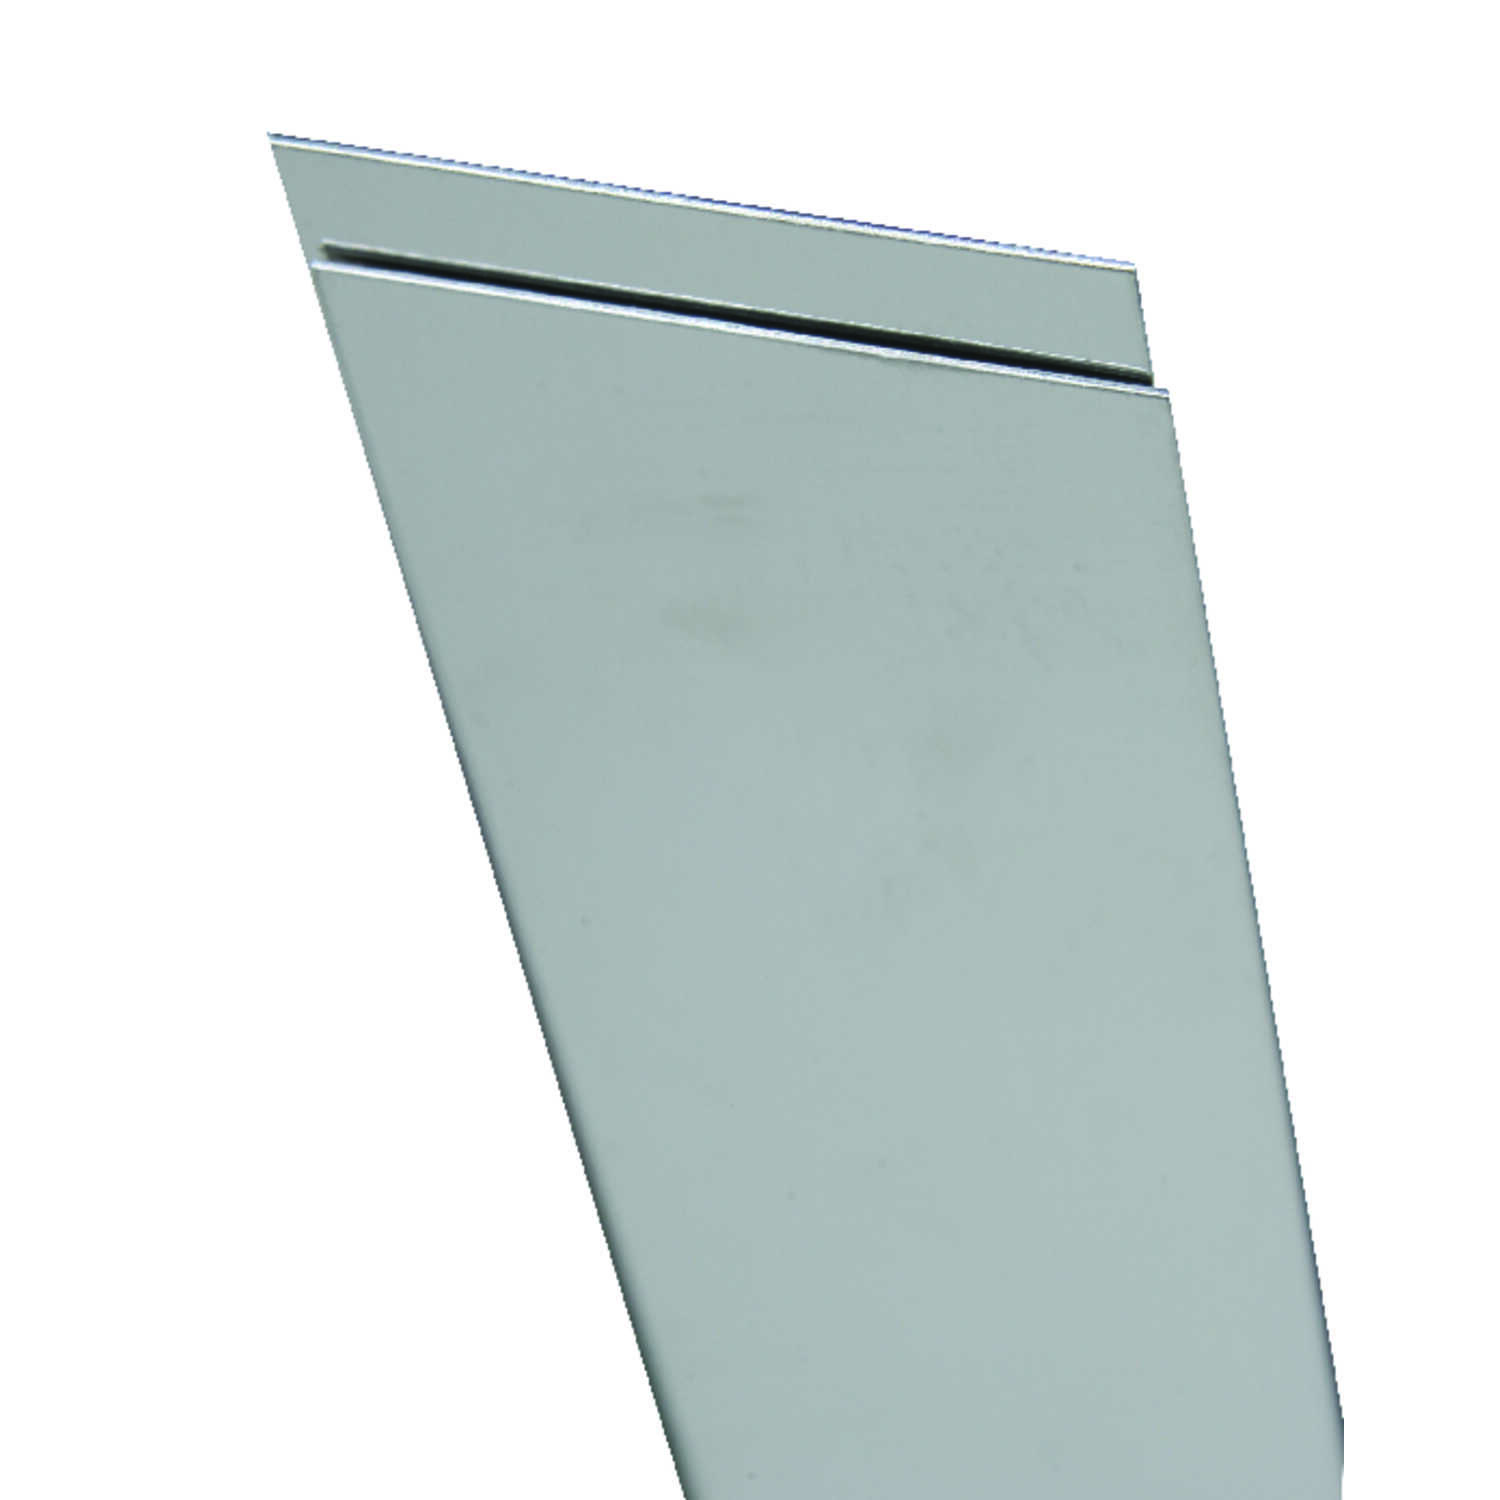 K&S  0.032 in.  x 4 in. W x 10 in. L Aluminum  Sheet Metal